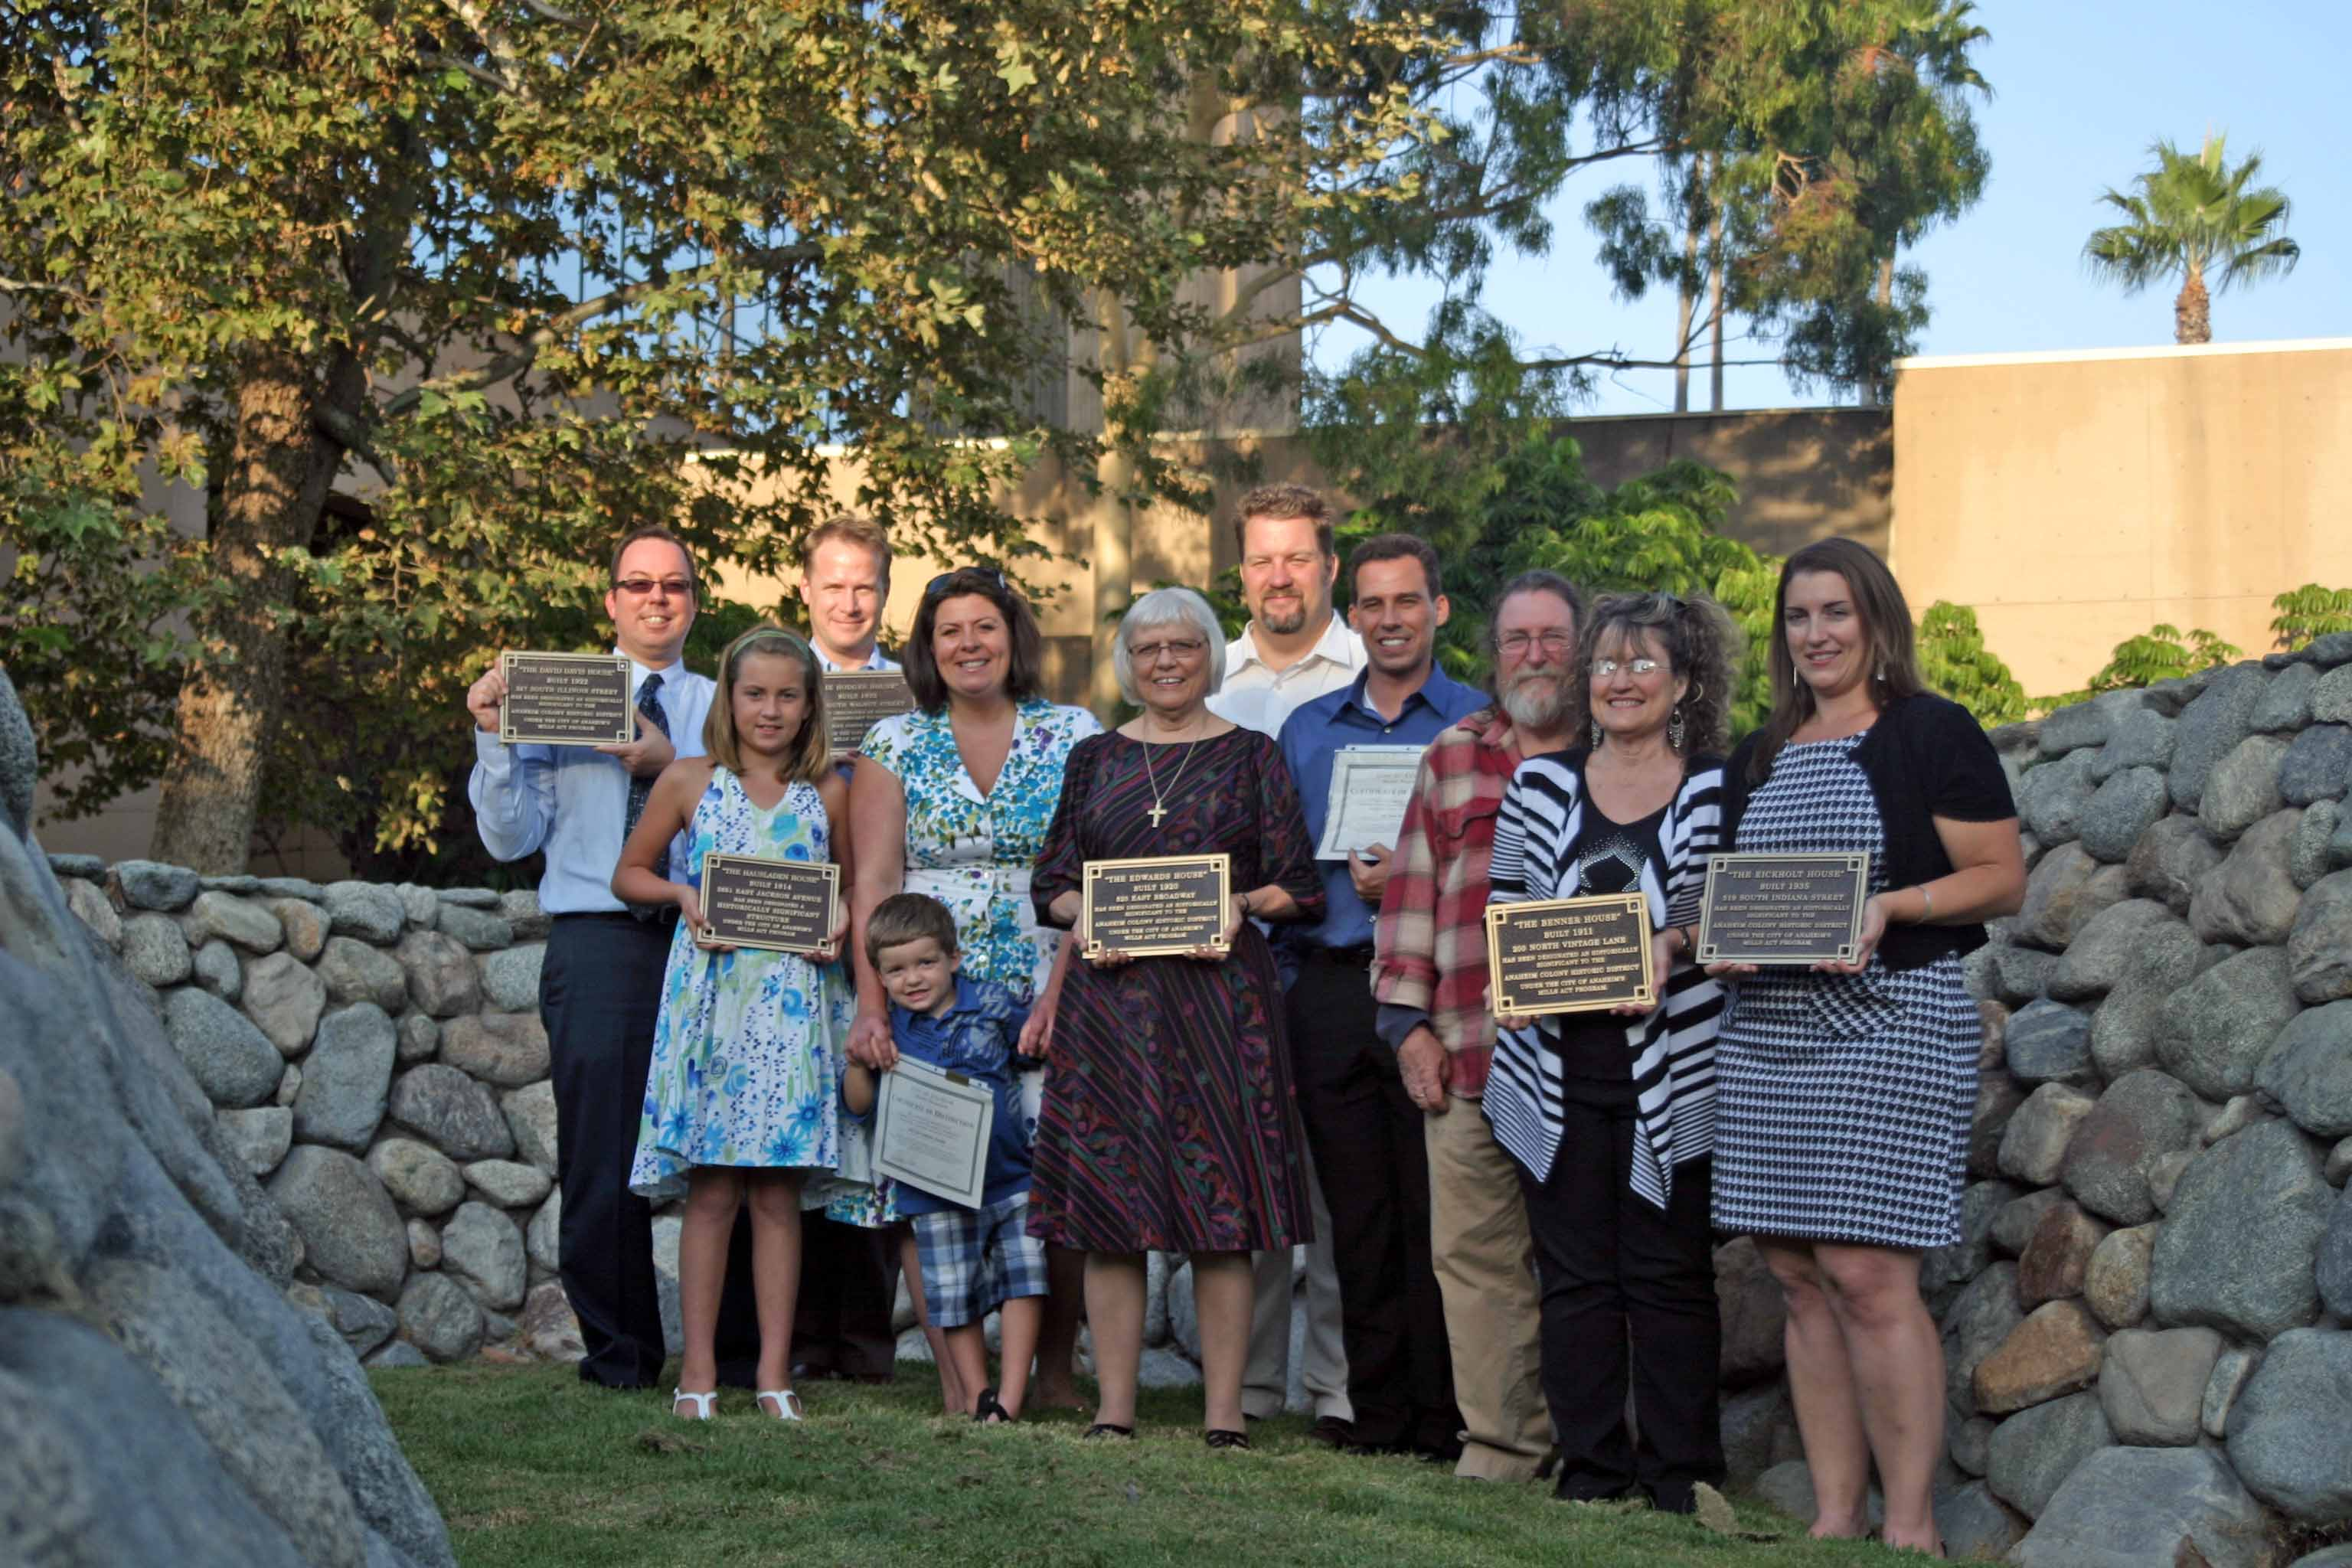 Group photo with the onwers holding their plaques for the Mills Act Participating Properties from 2010